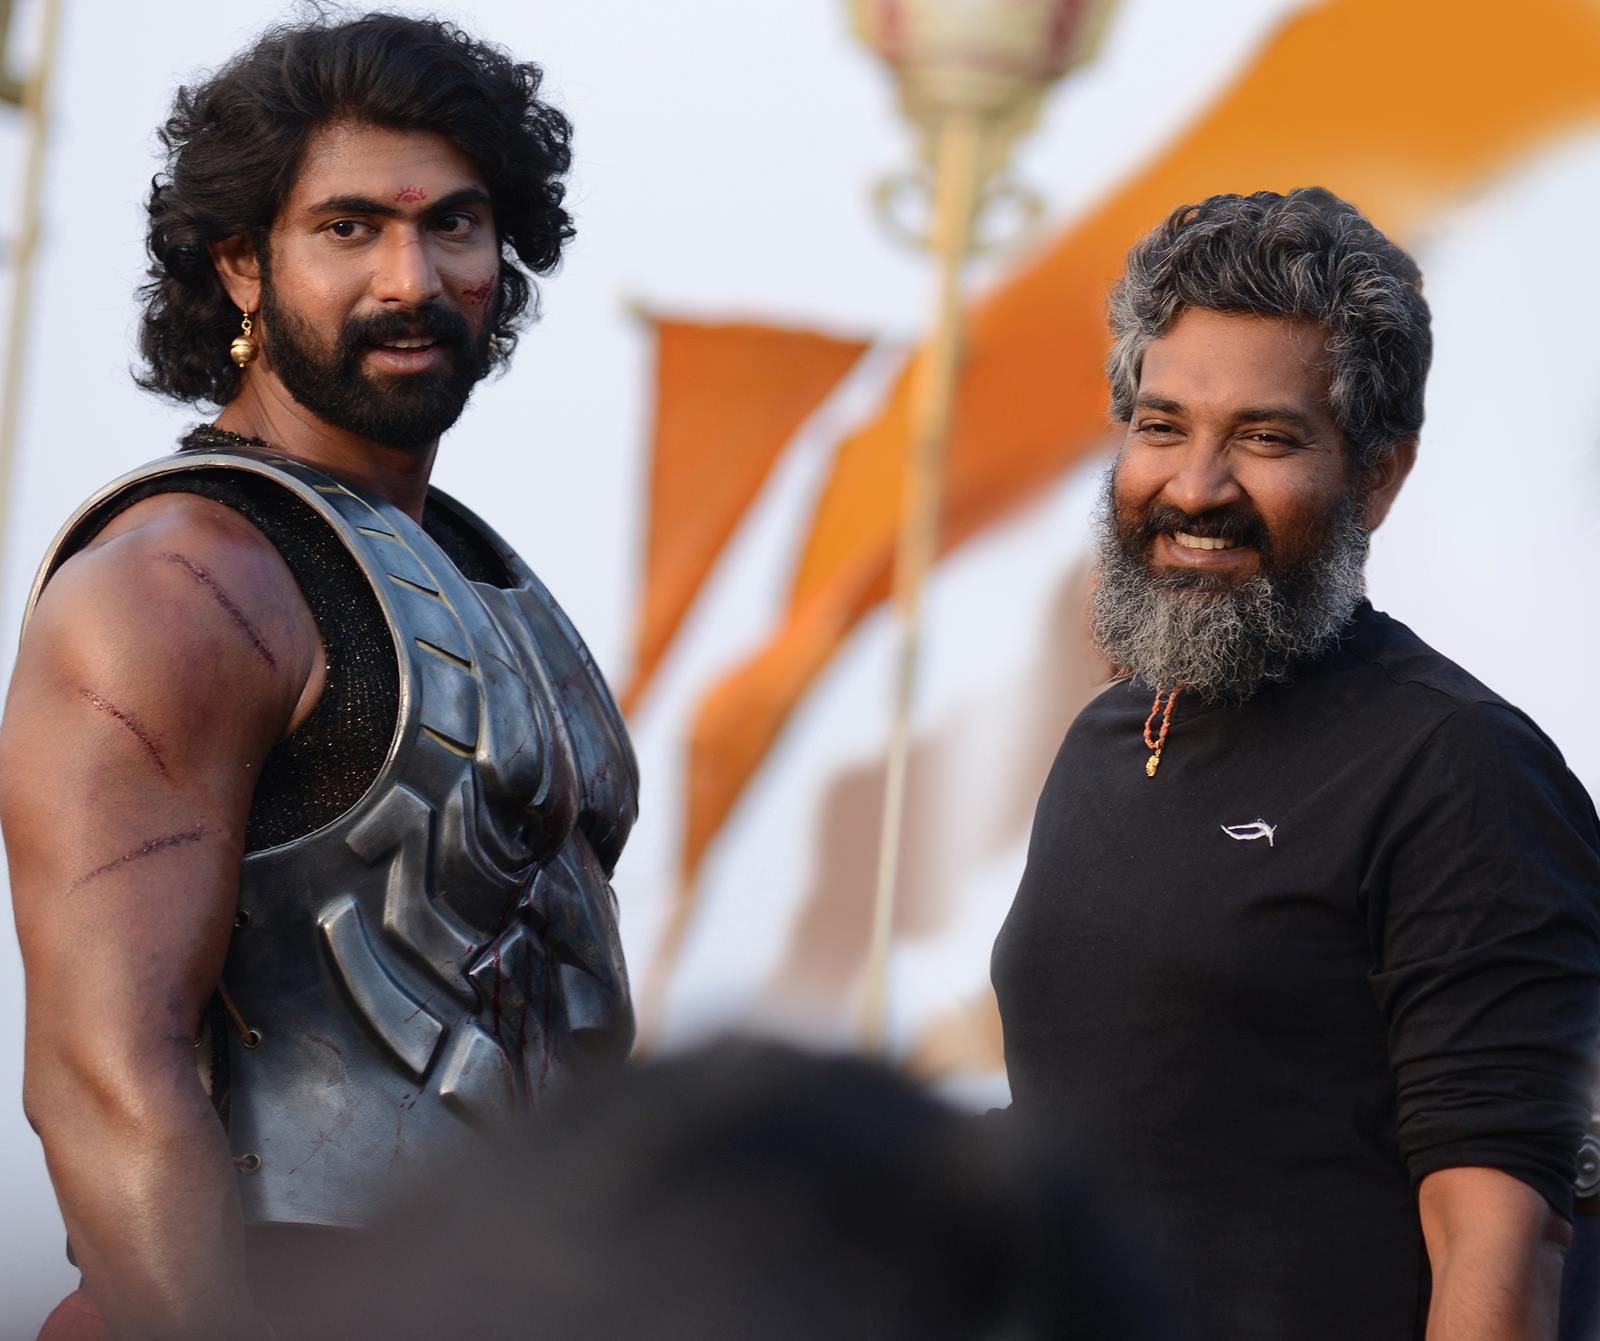 baahubali new working stills - hd no watermarks - prabhas fans forever